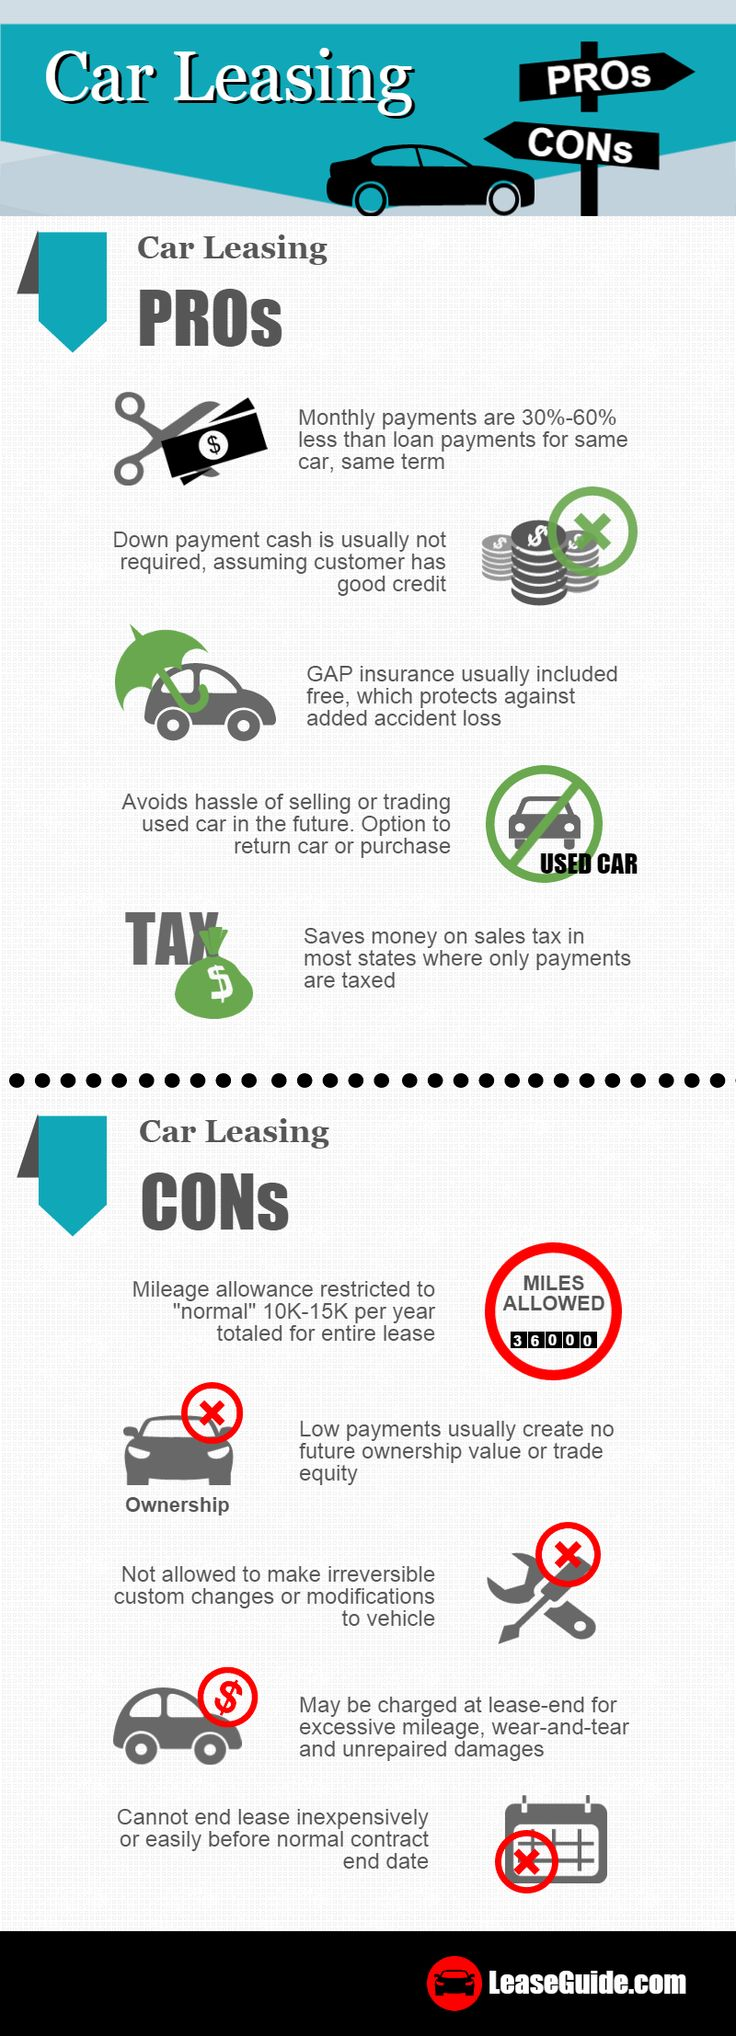 Car leasing pros and cons by leaseguide com